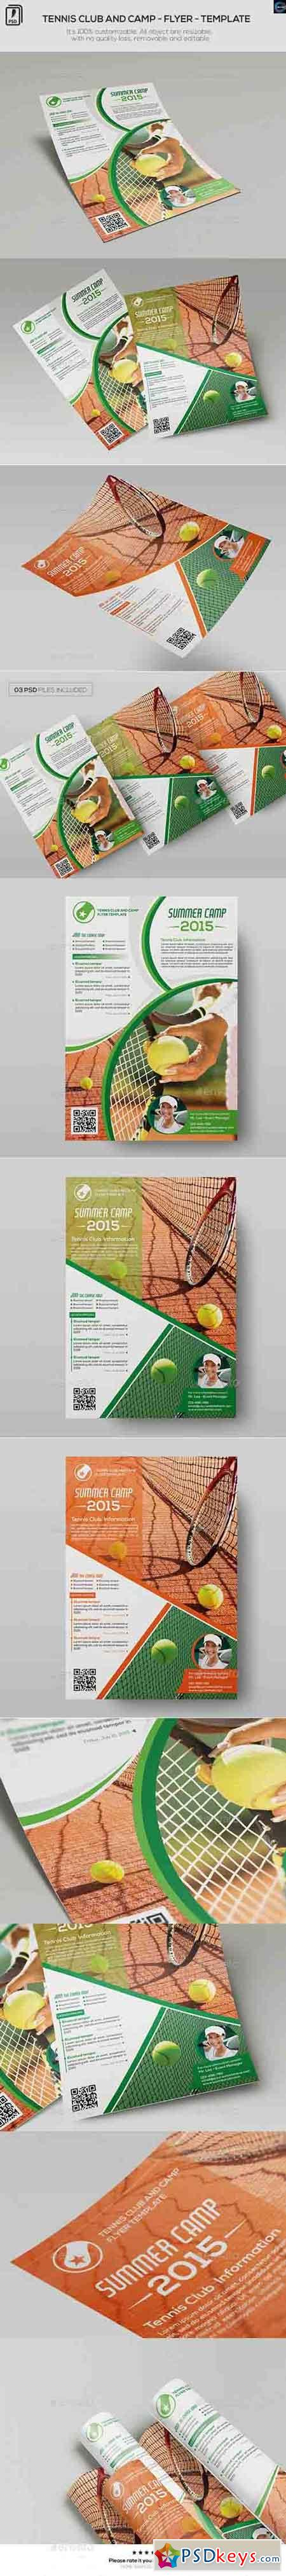 Tennis Club and Camp - Flyer Template 12097296